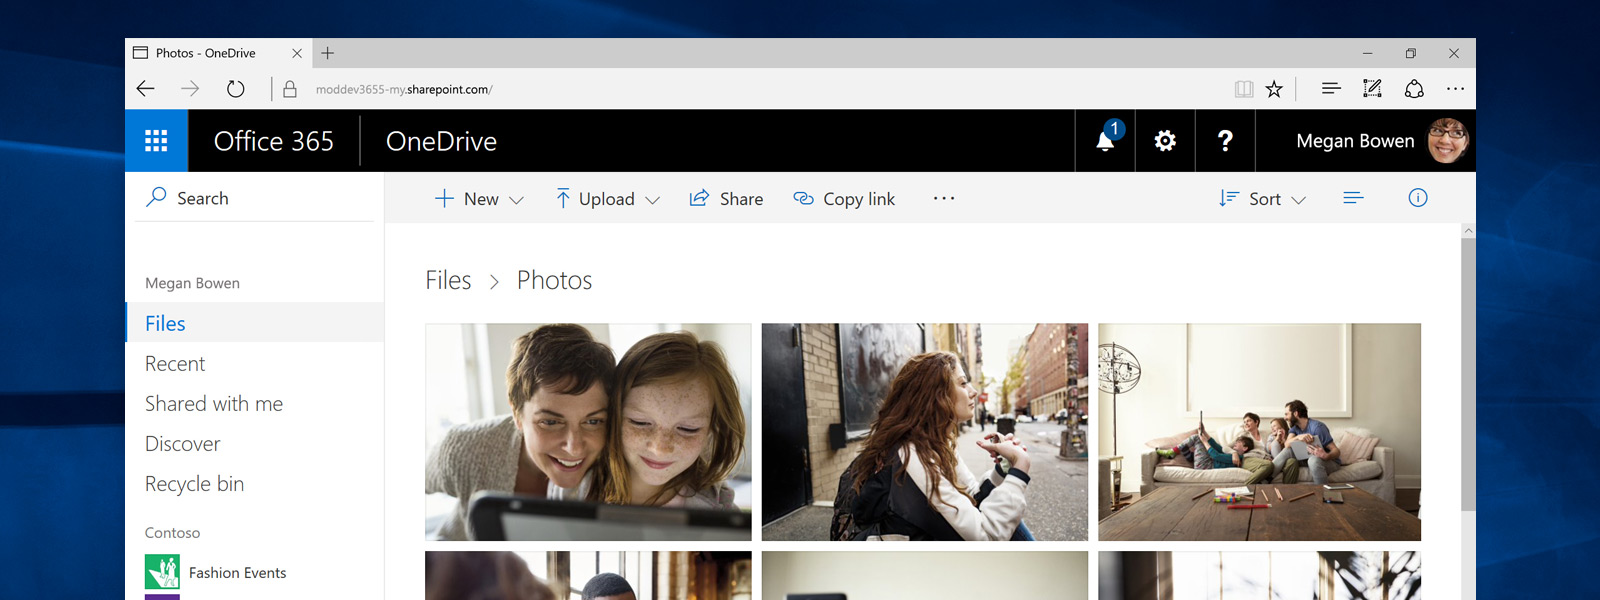 A Microsoft Edge browser with OneDrive open showing photos that are stored